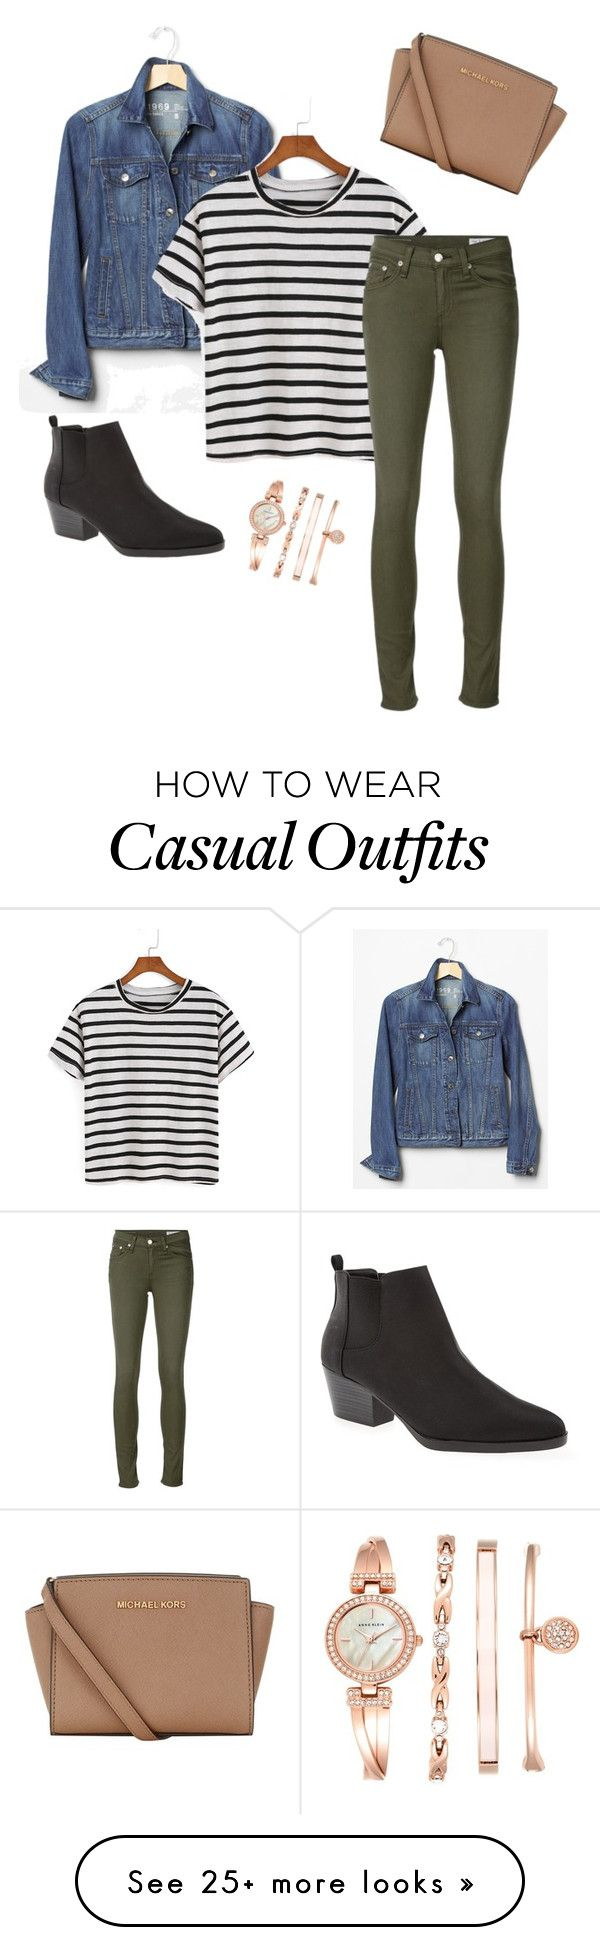 """Casual"" by isabelle-diga on Polyvore featuring Gap, rag & bone/JEAN, Old Navy, MICHAEL Michael Kors and Anne Klein"